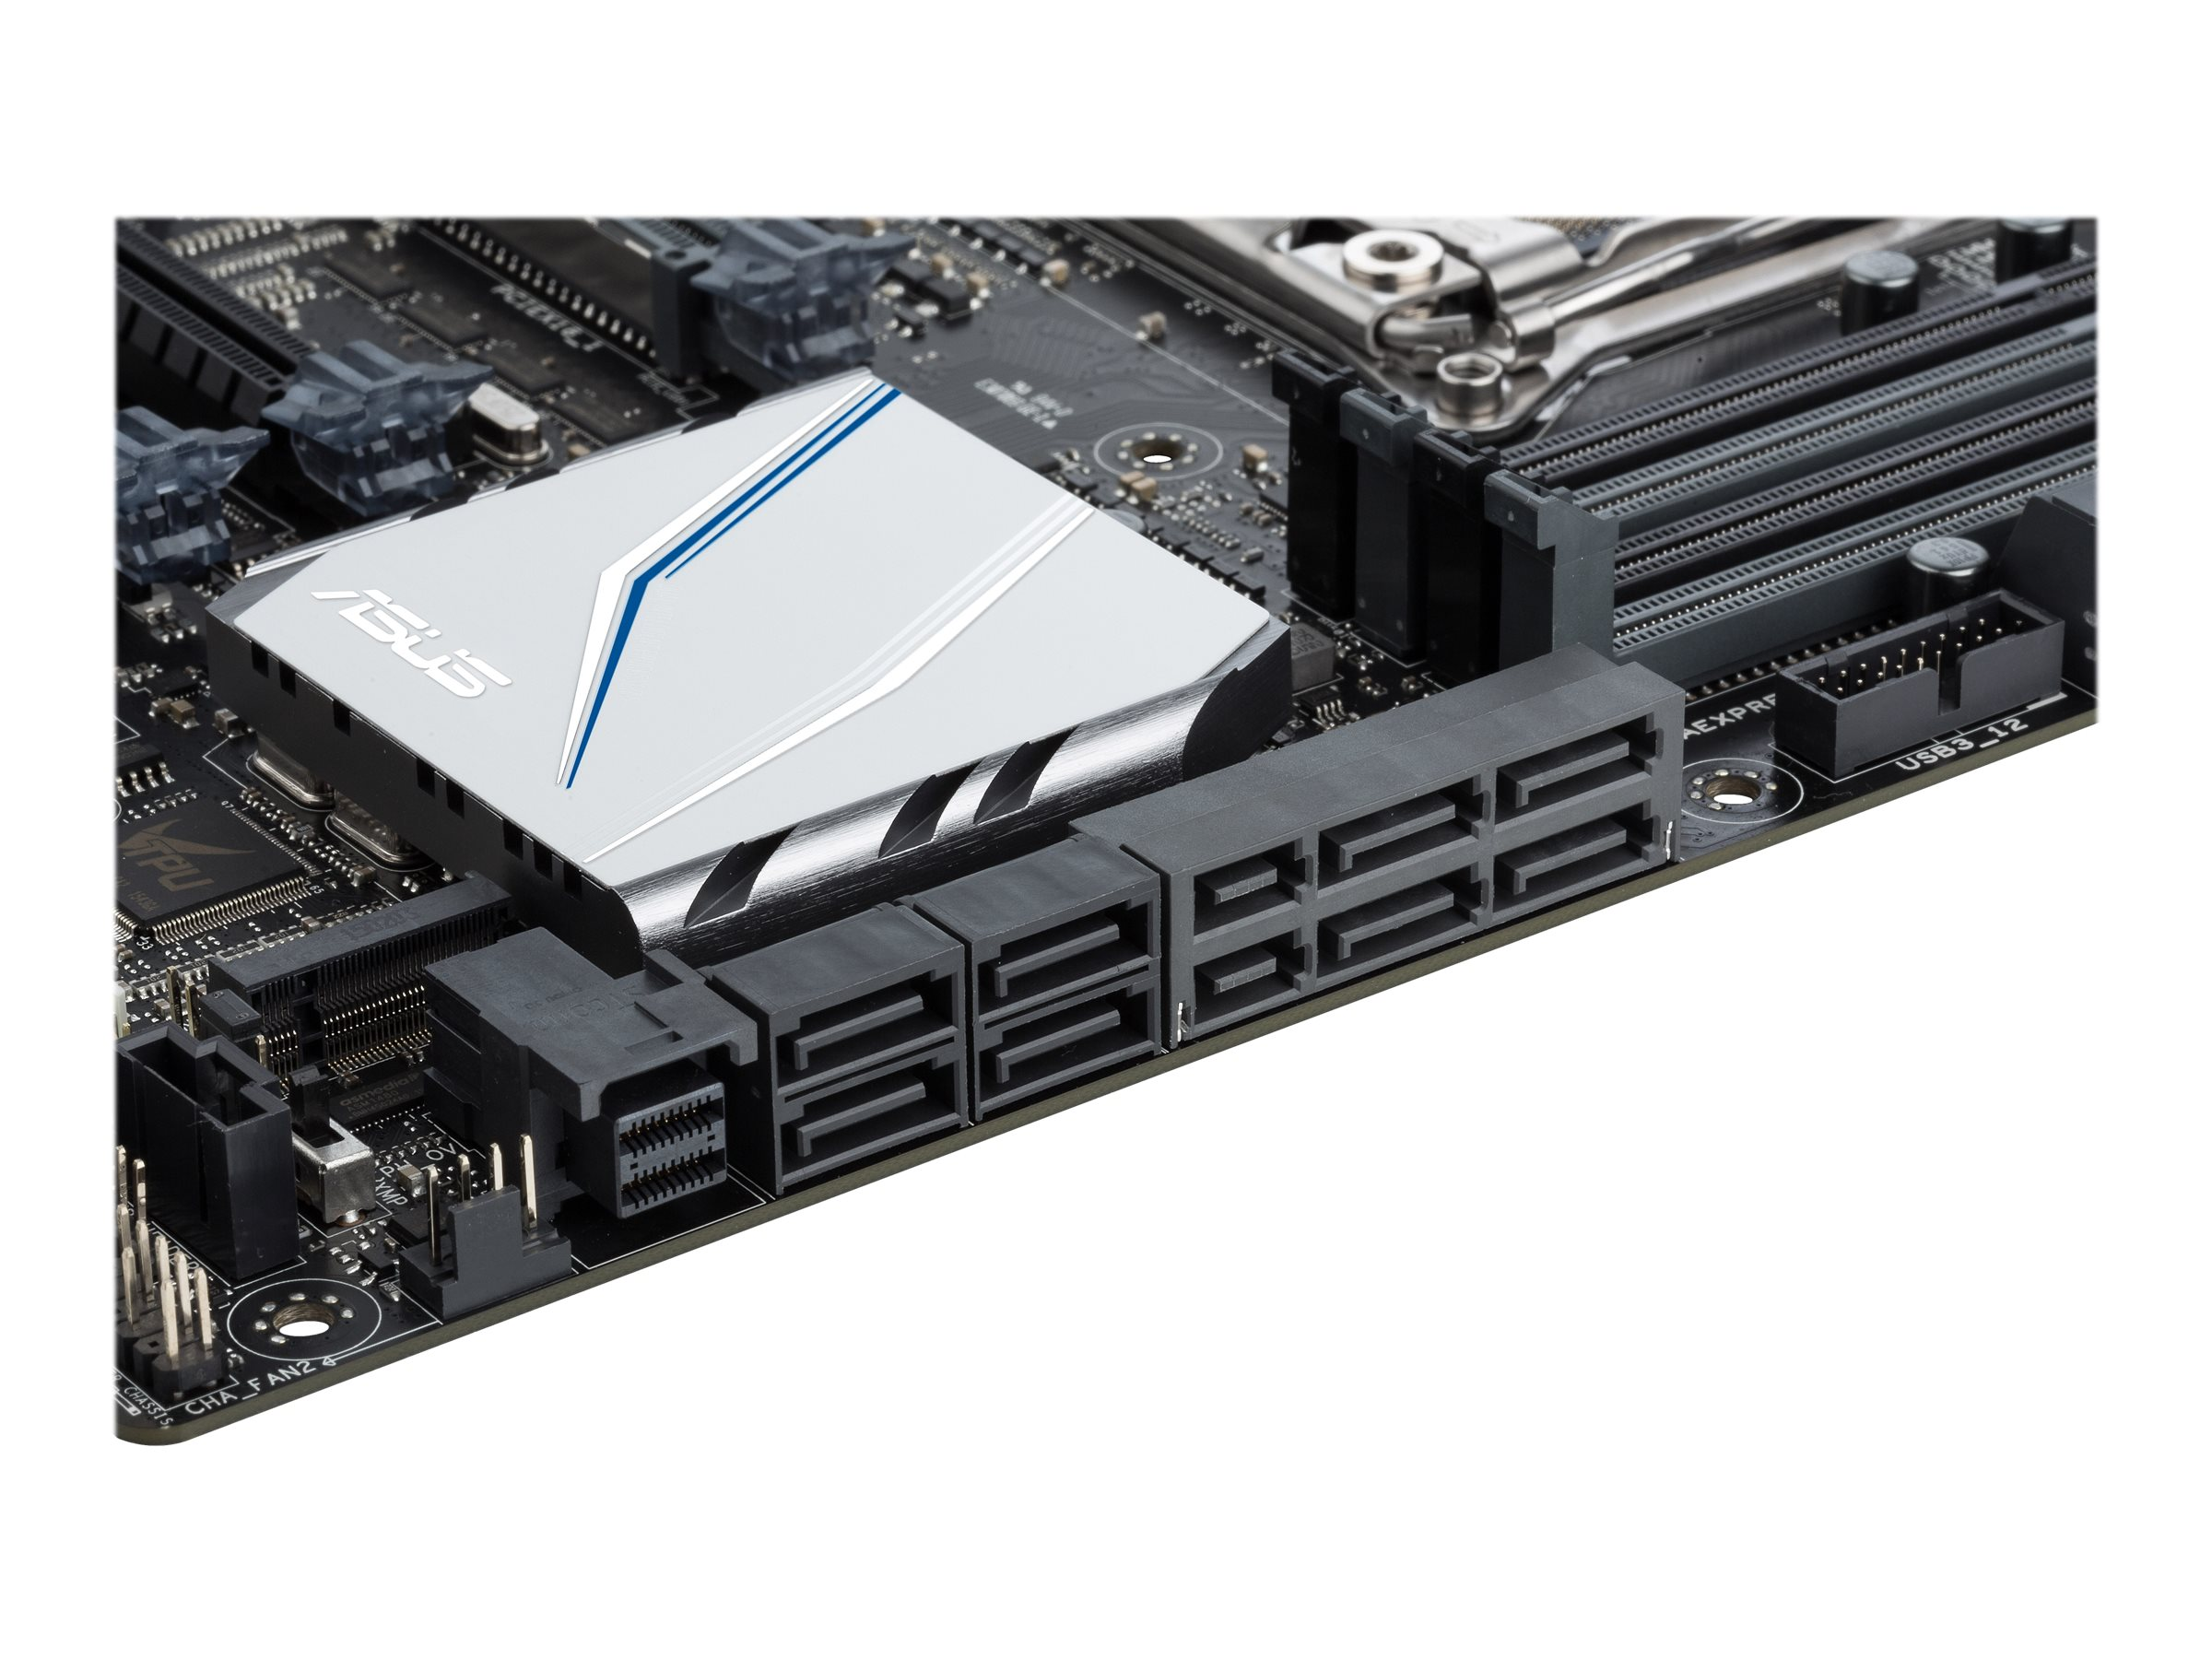 Asus X99-A II Image 4